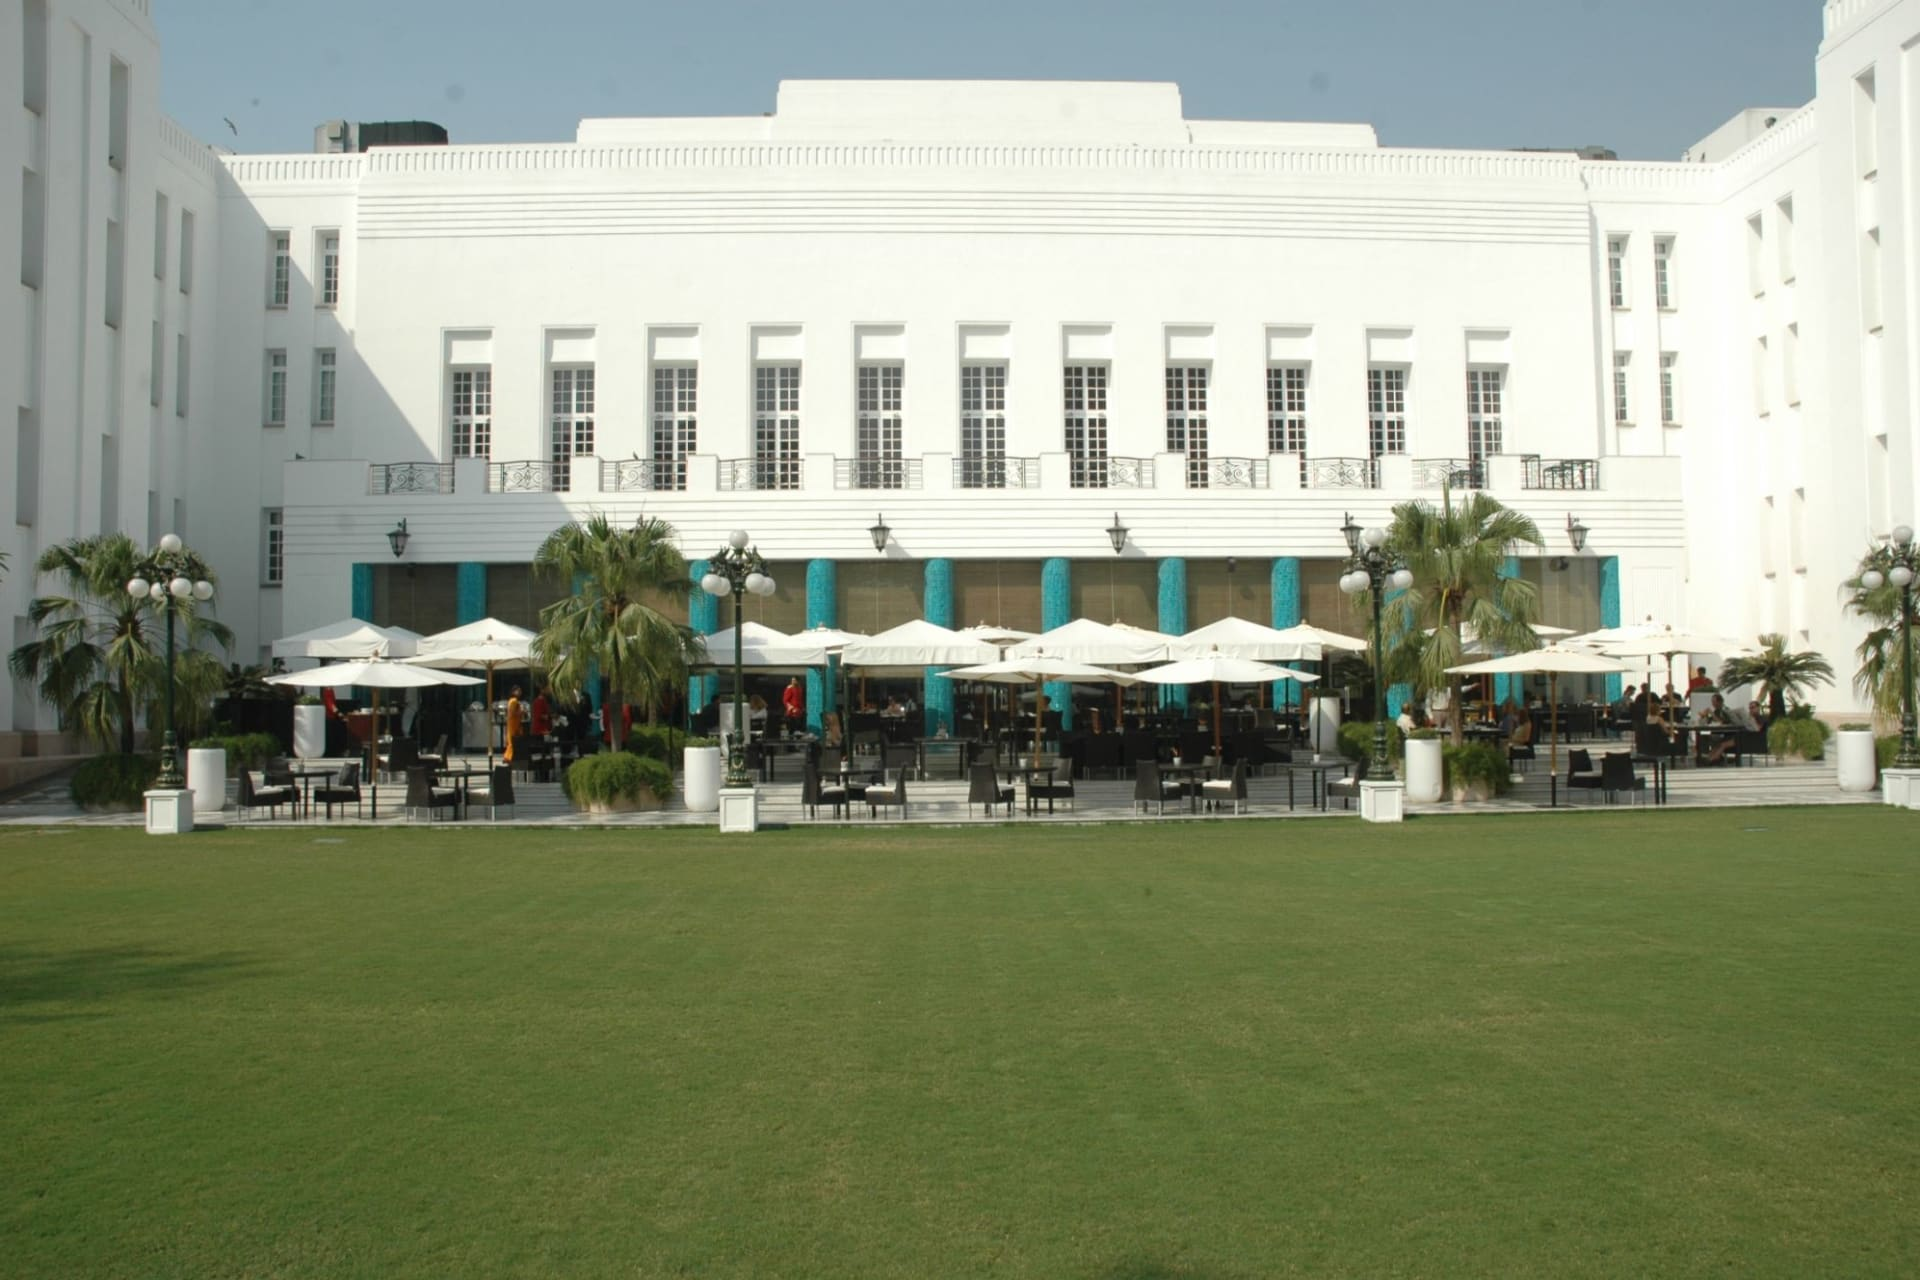 exterior: 1911 lawns with blue pillars